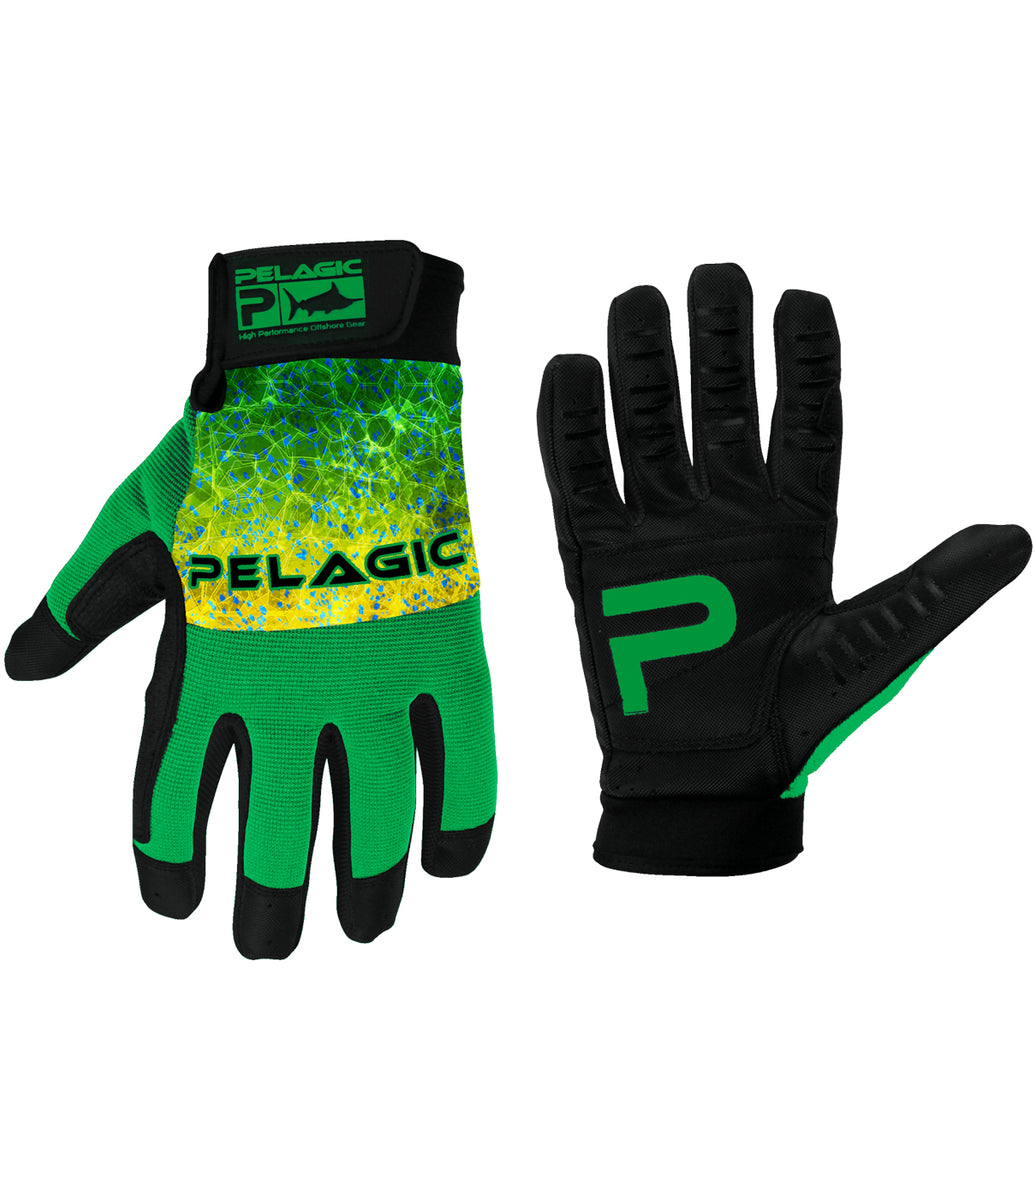 End Game Pro Gloves Big Image - 8